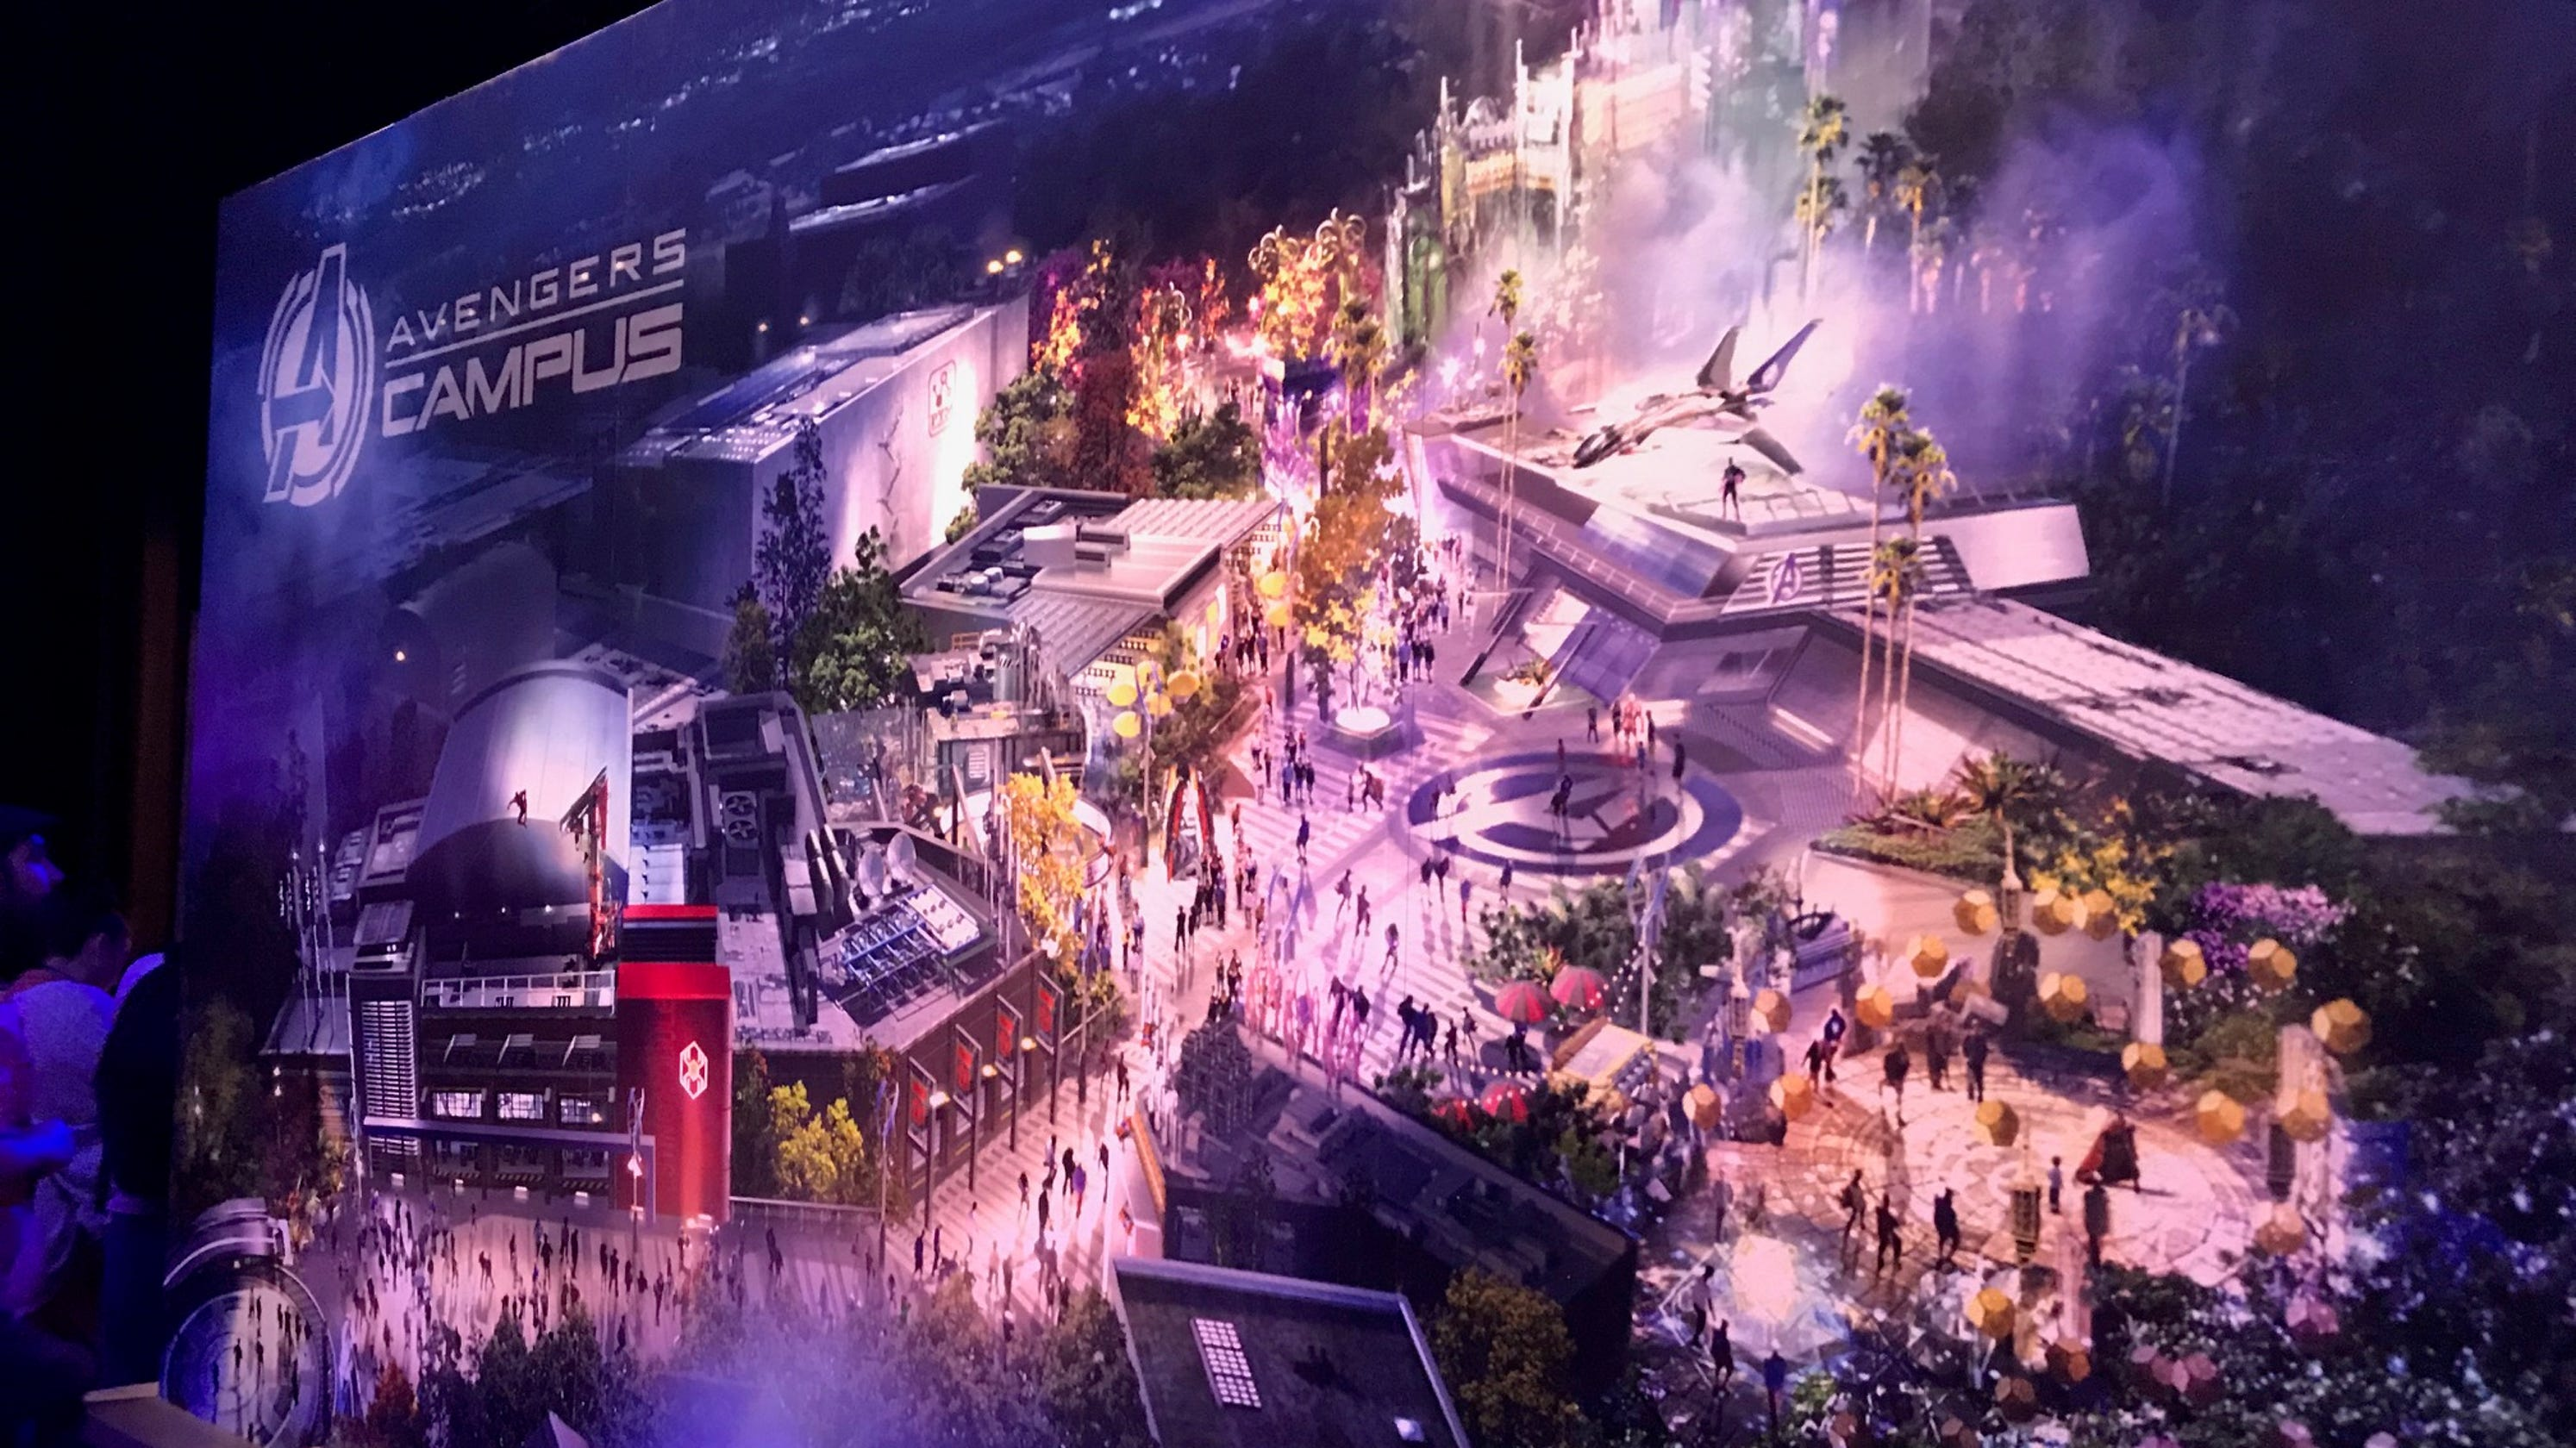 From Epcot's update to a Spider-Man ride, everything Disney revealed about its parks at D23